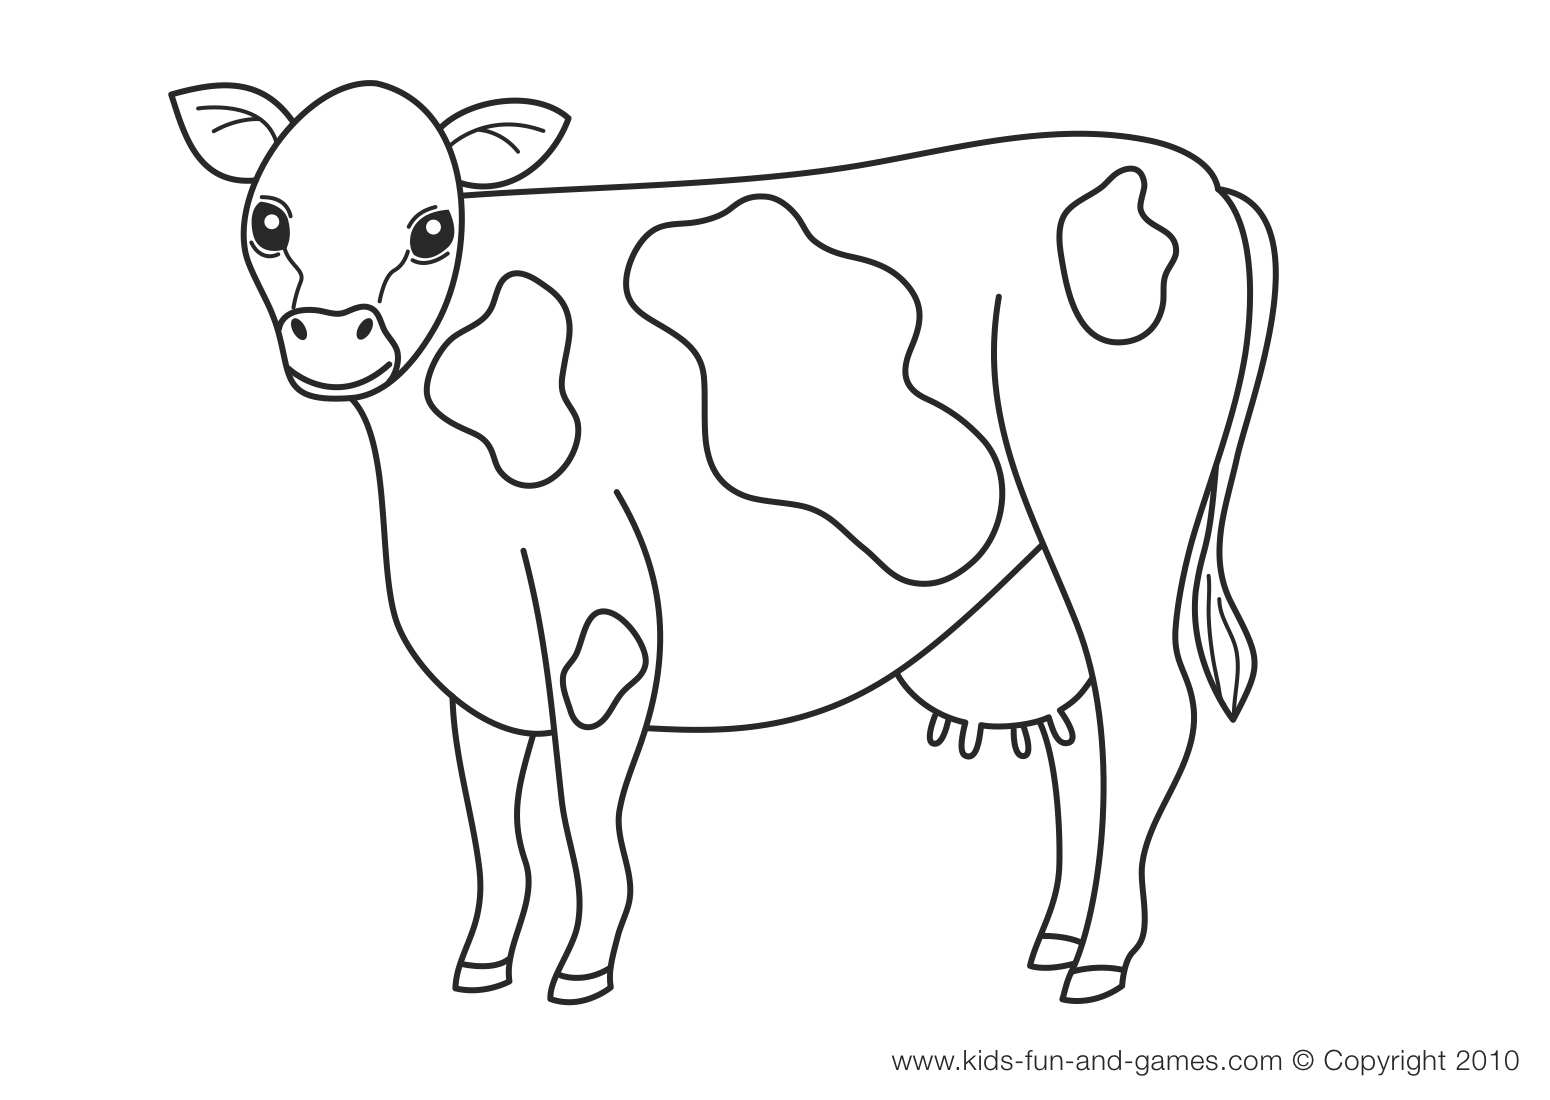 Cow Drawing Simple at GetDrawings.com | Free for personal use Cow ...